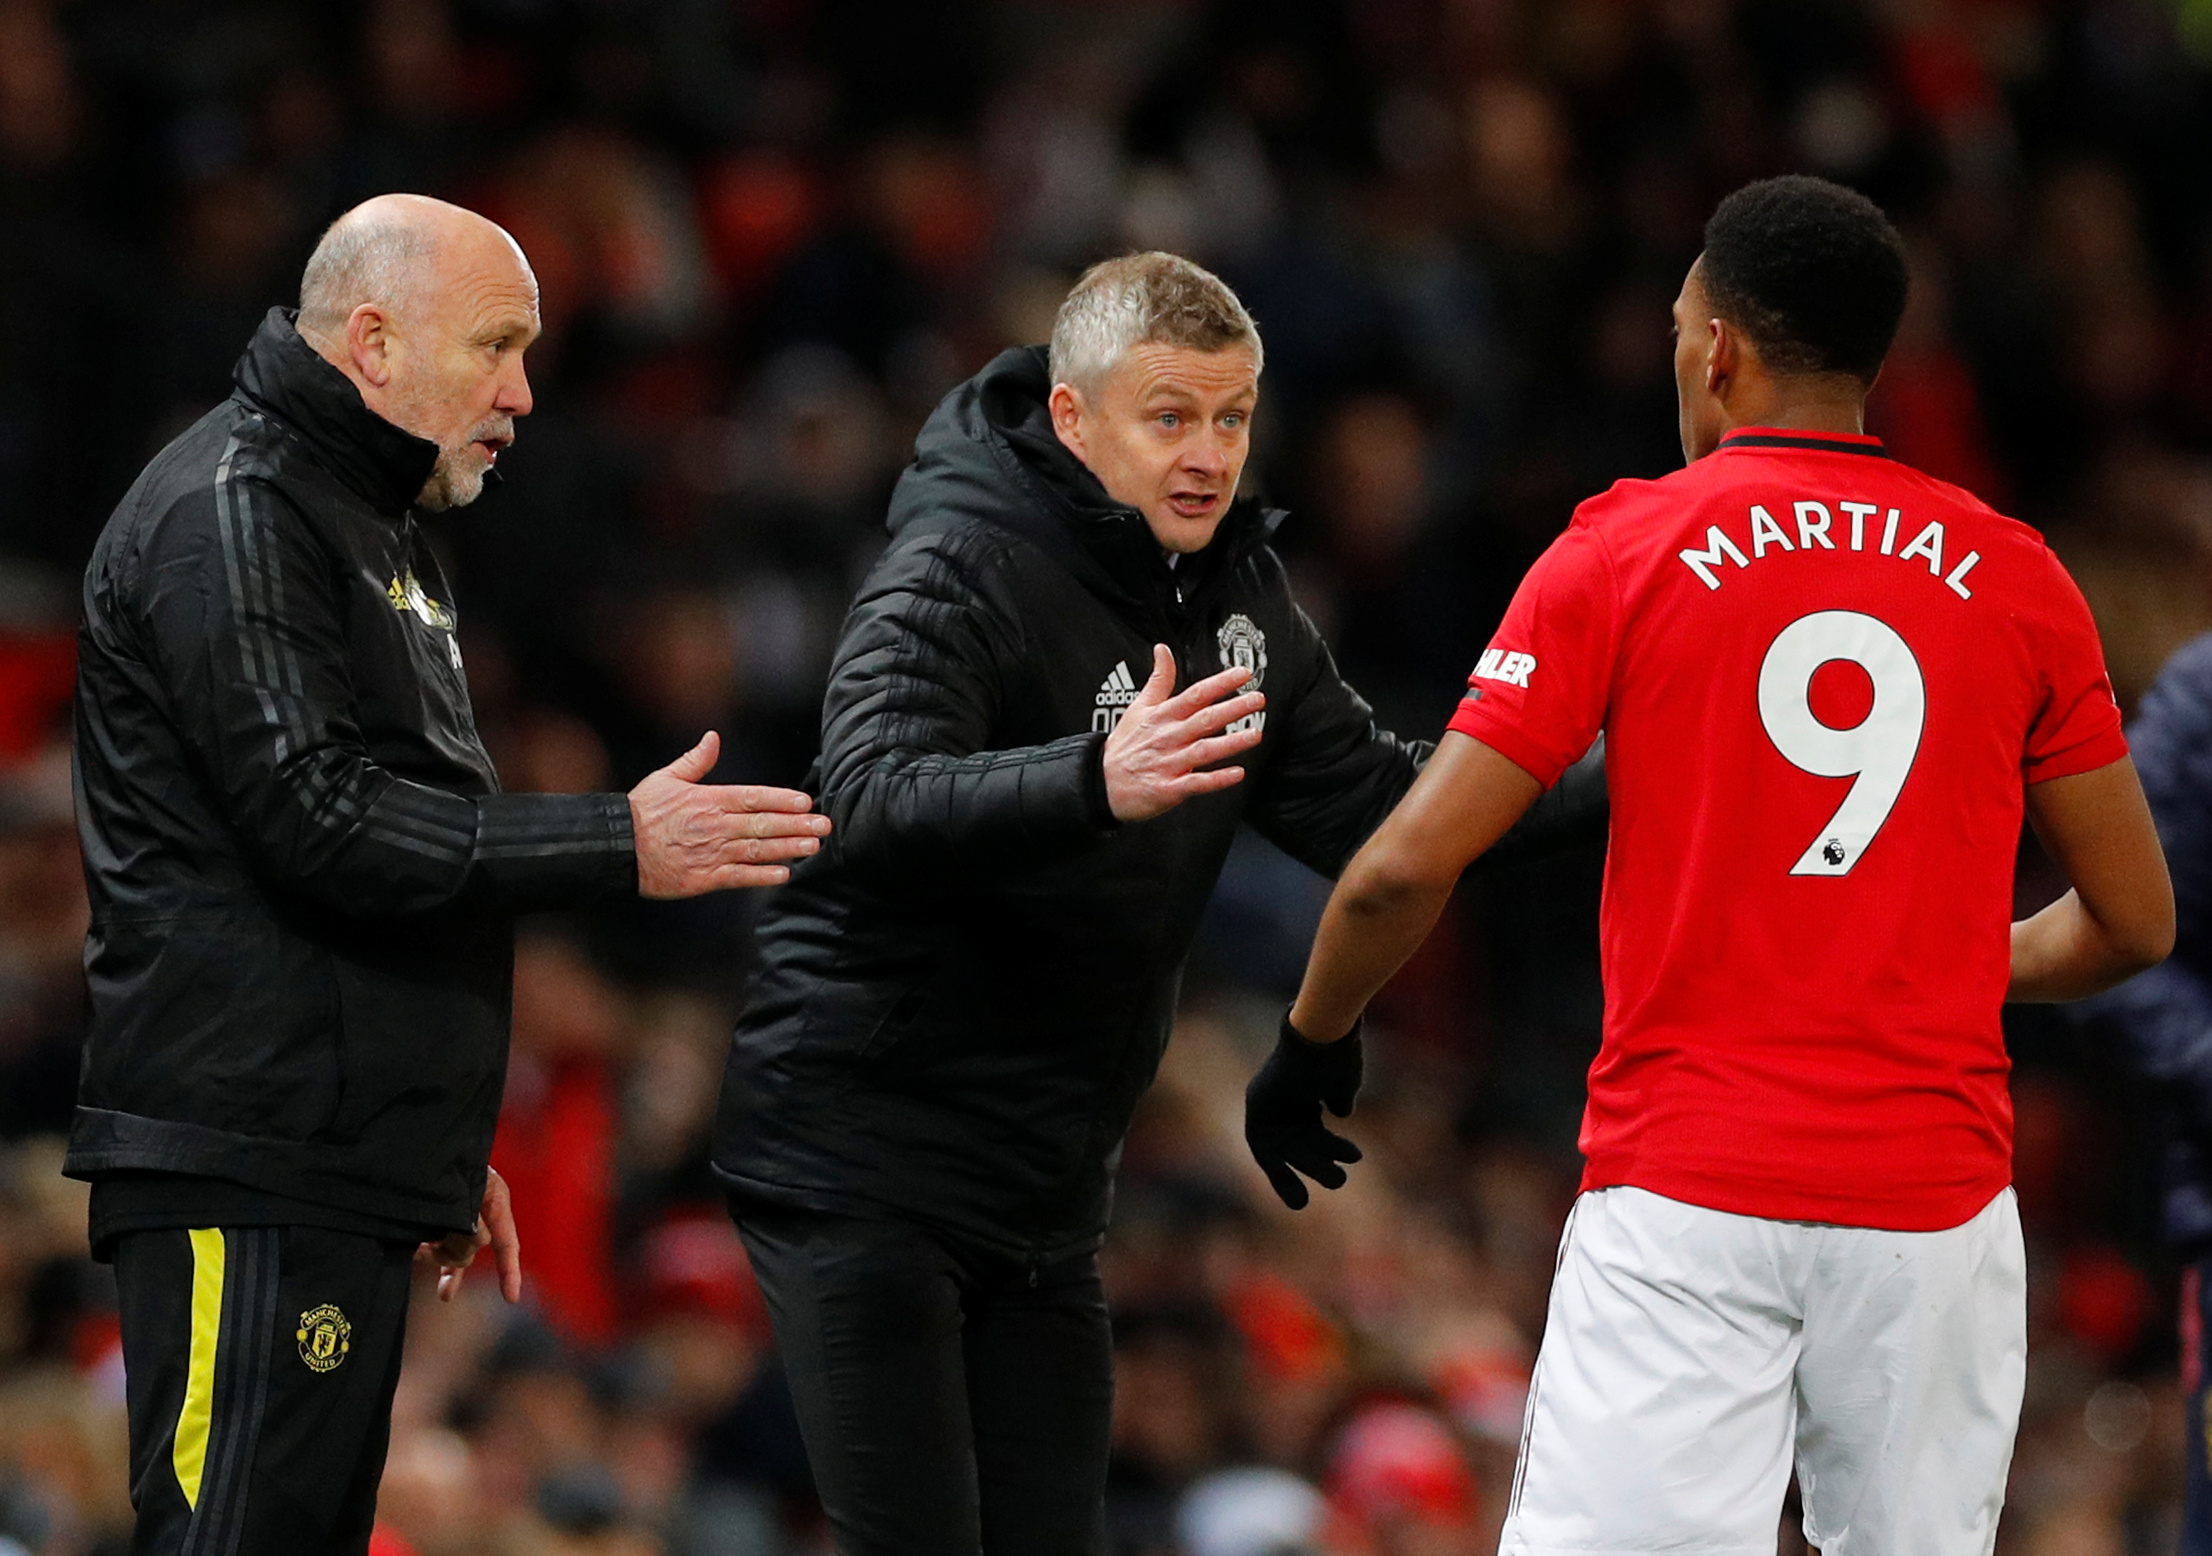 Solskjaer informs Manchester United players of possible sacking